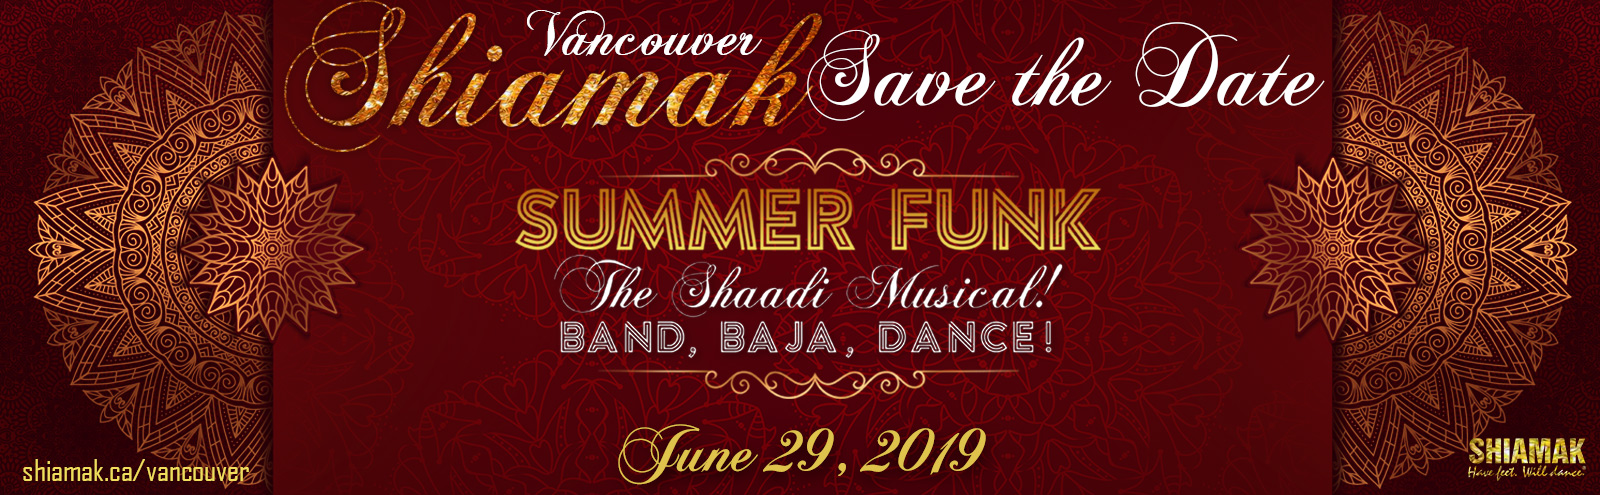 Summer Funk 2019 - Save the Date